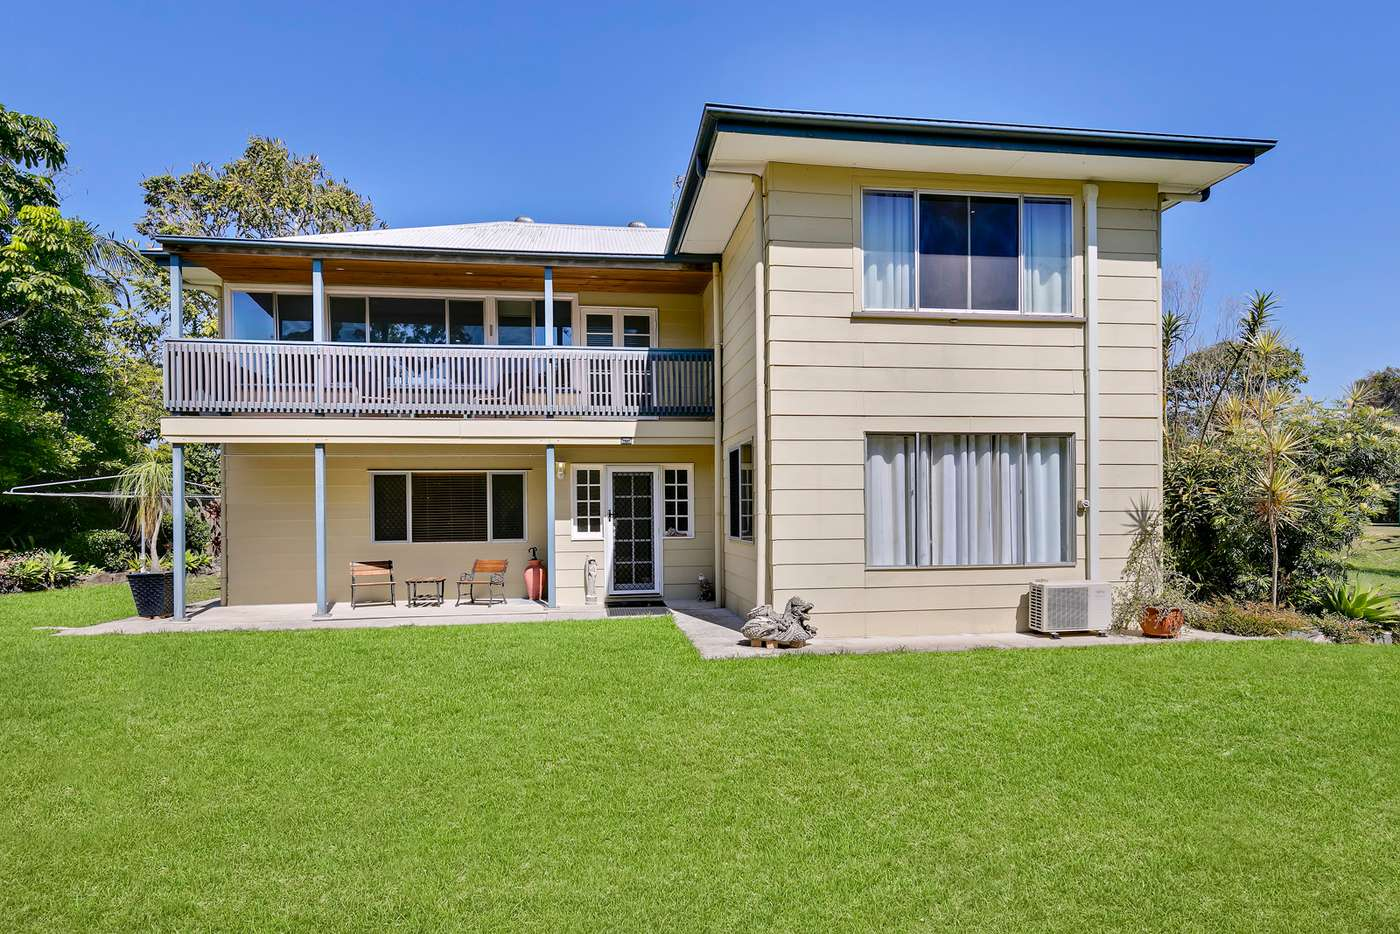 Main view of Homely rural listing, 22 Bowen Road, Glass House Mountains, QLD 4518